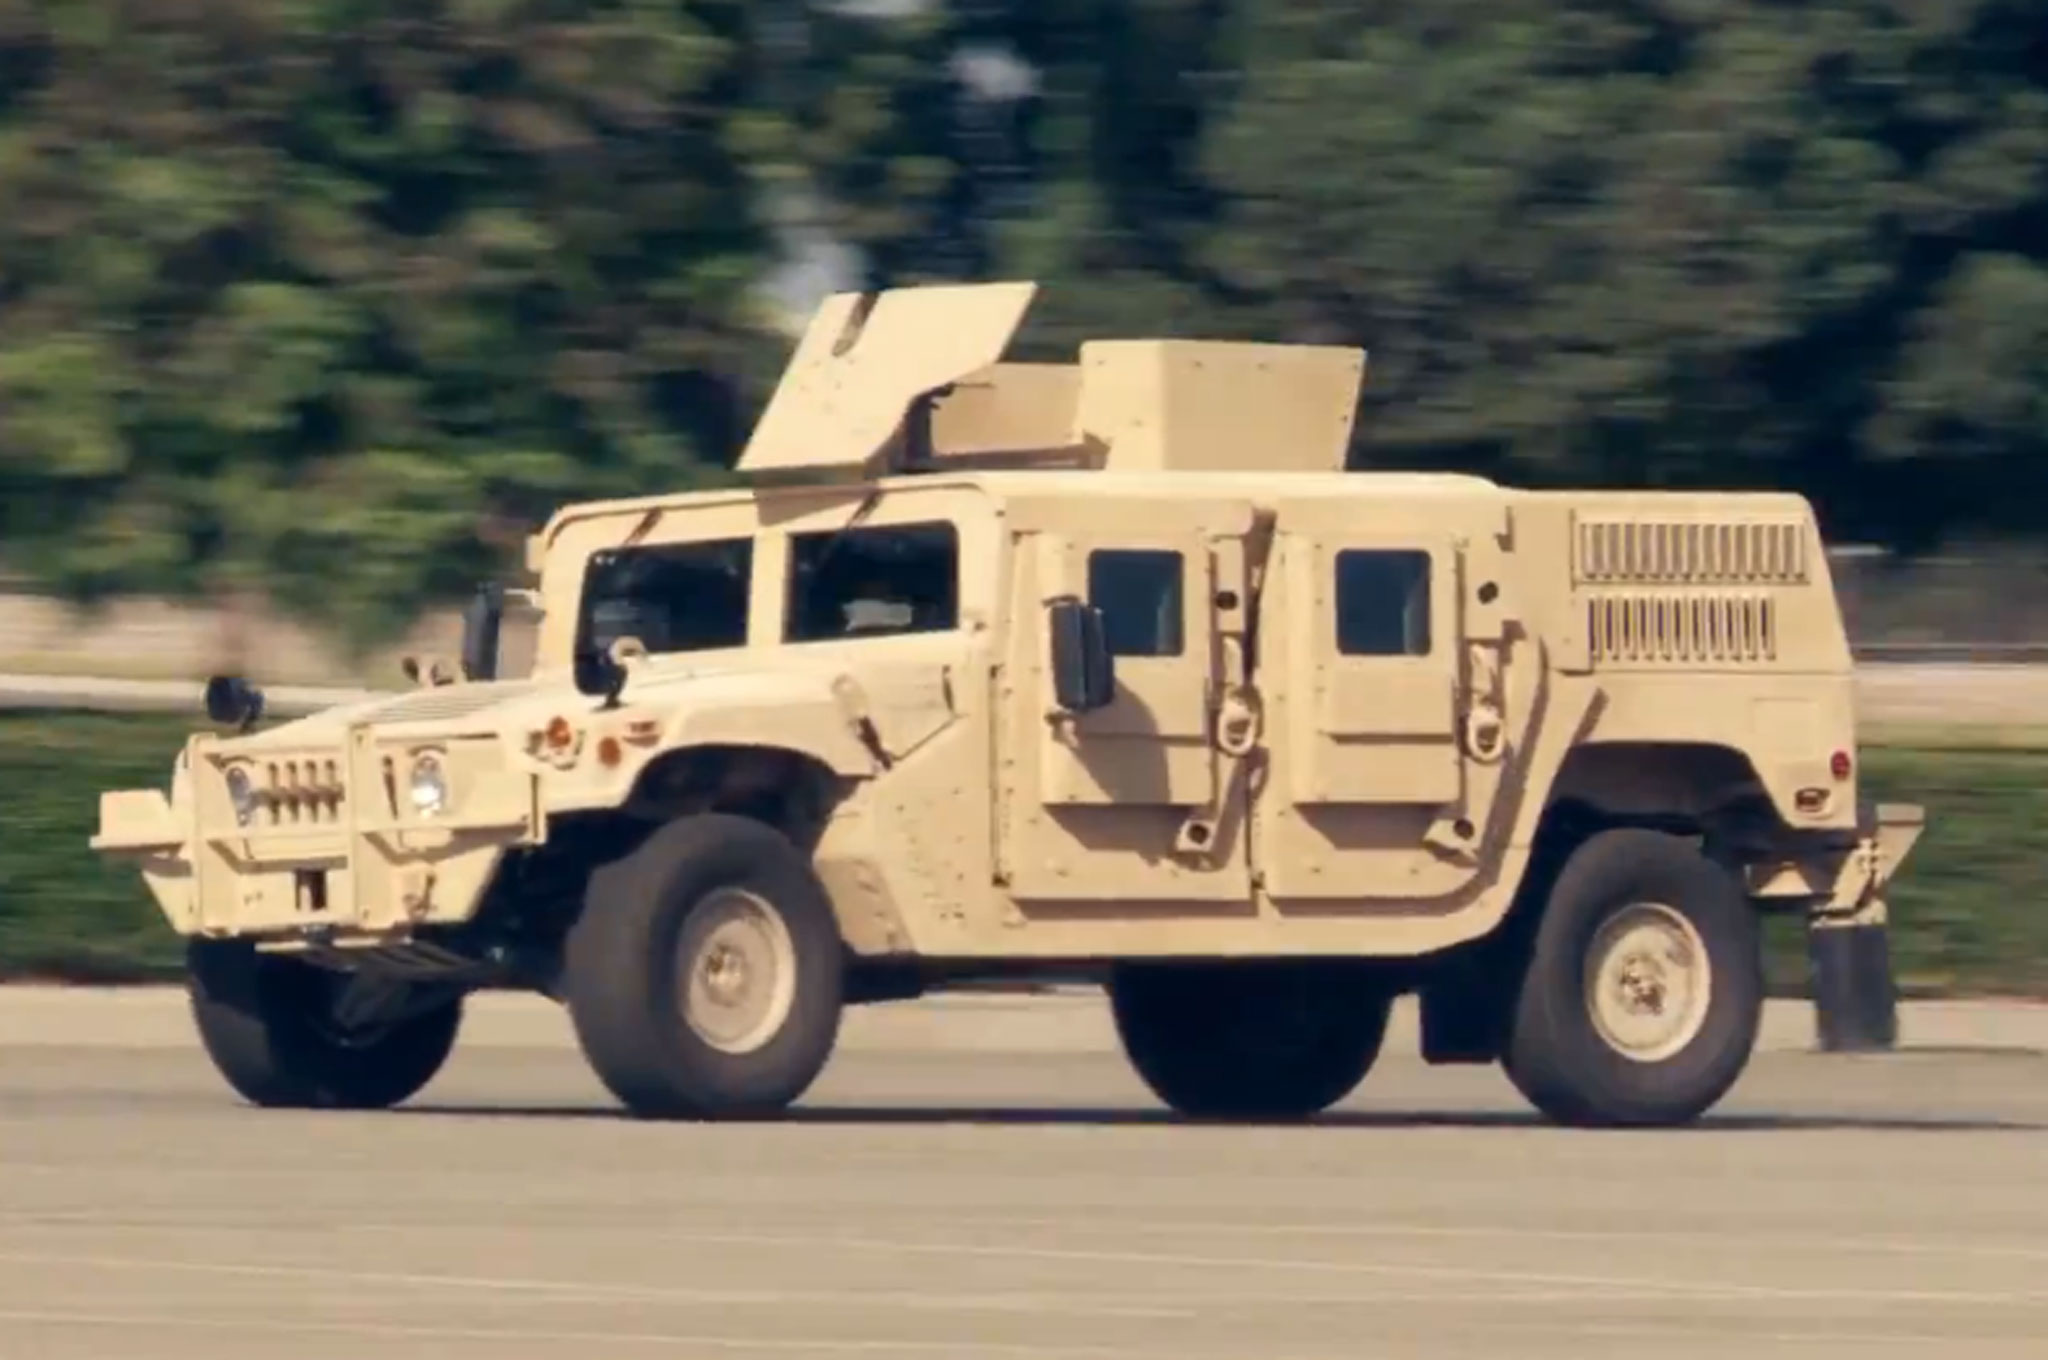 Banks Engineered 1984 General Humvee Around Figure Eight1